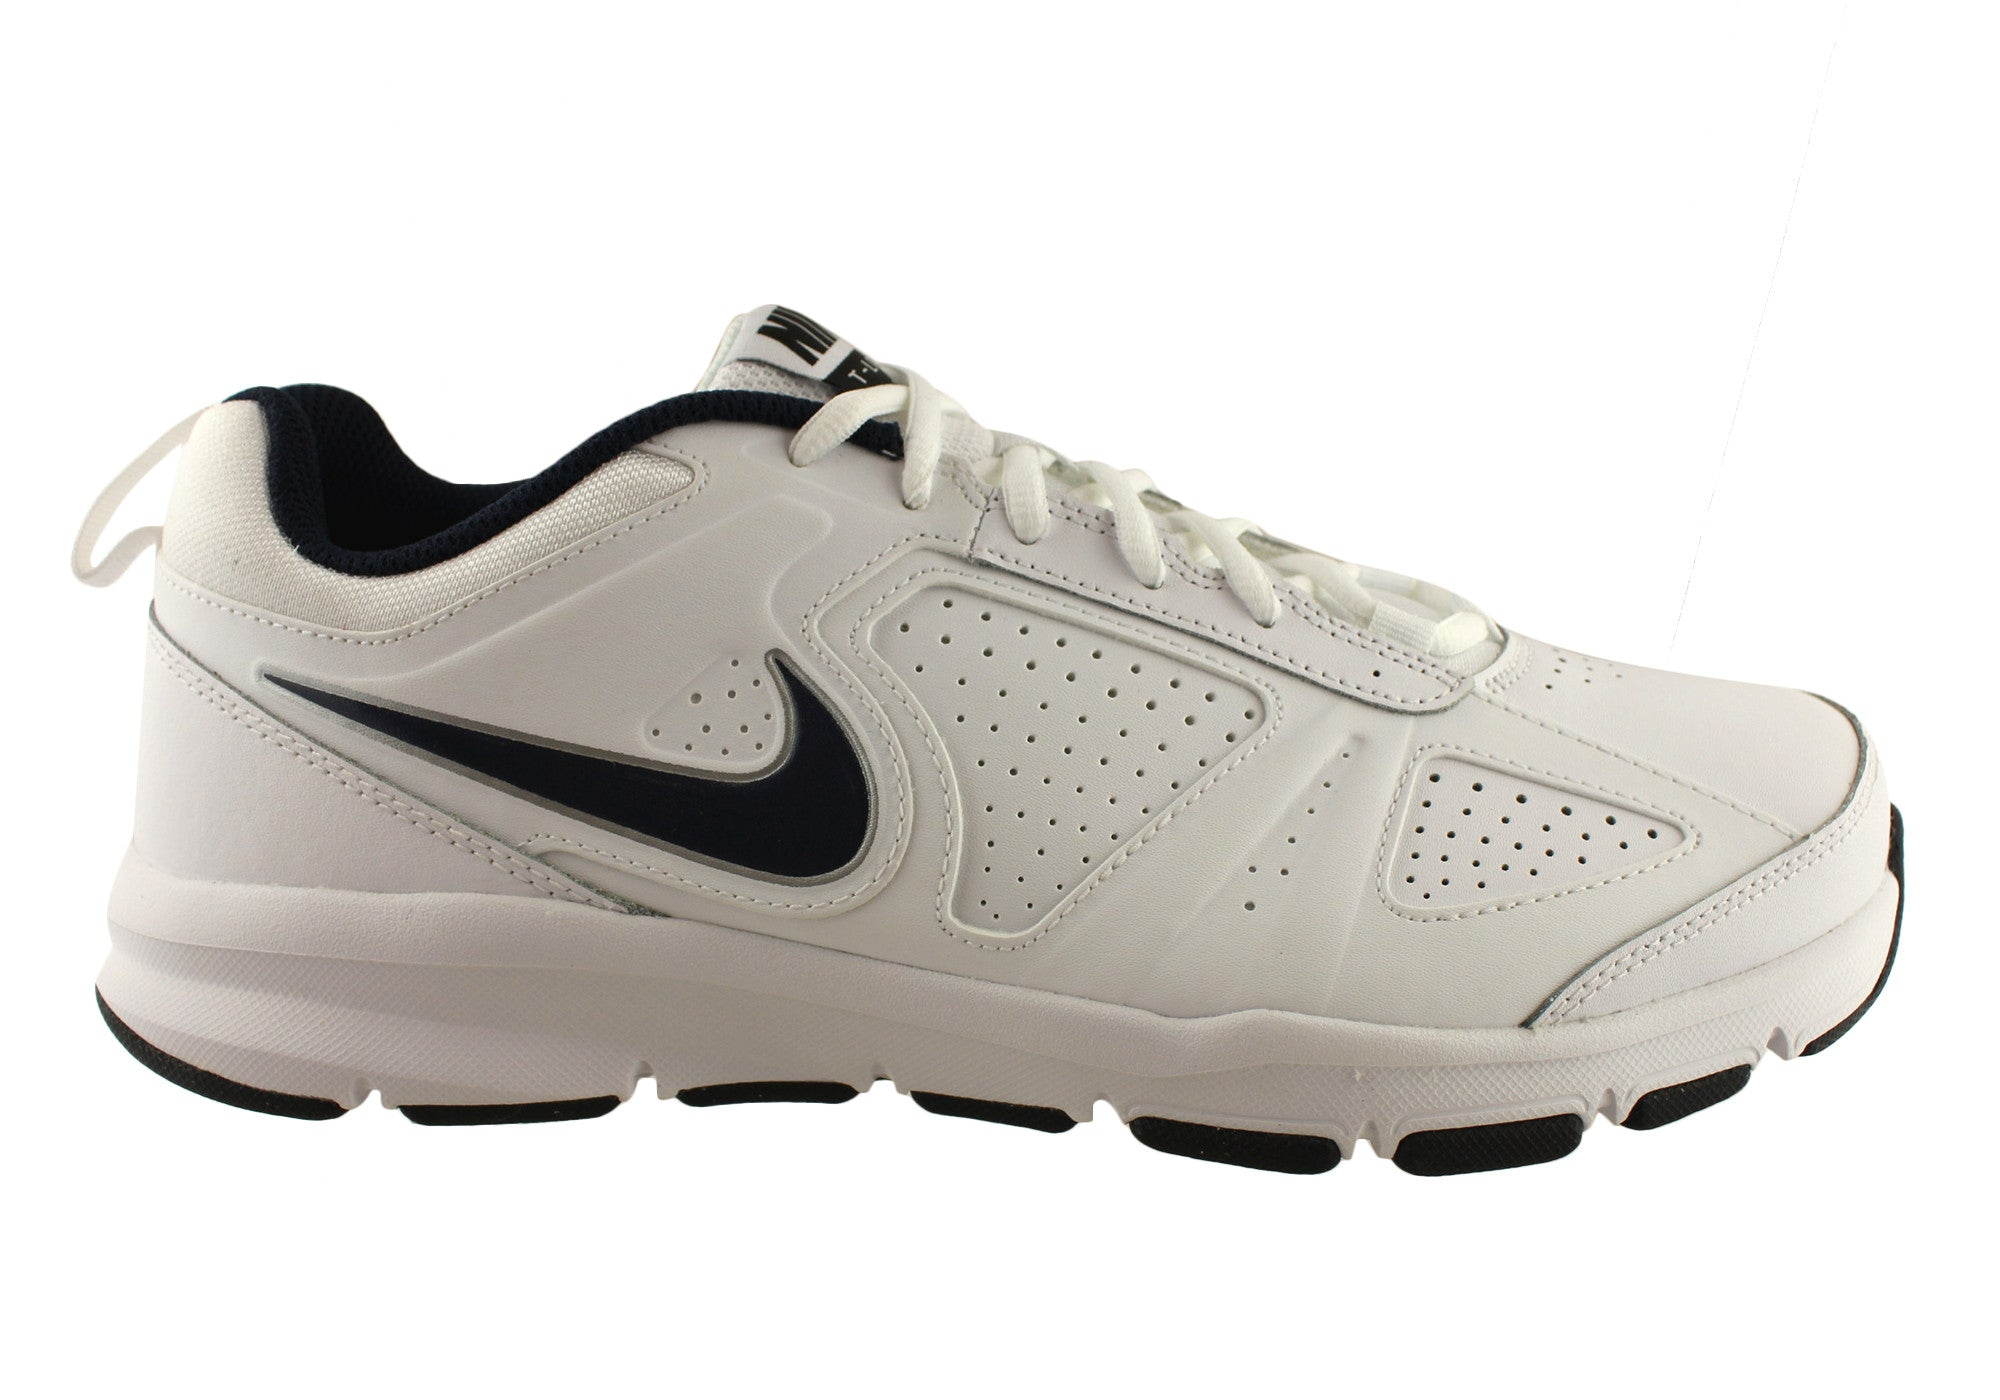 Nike Toddler Wide Width Shoes